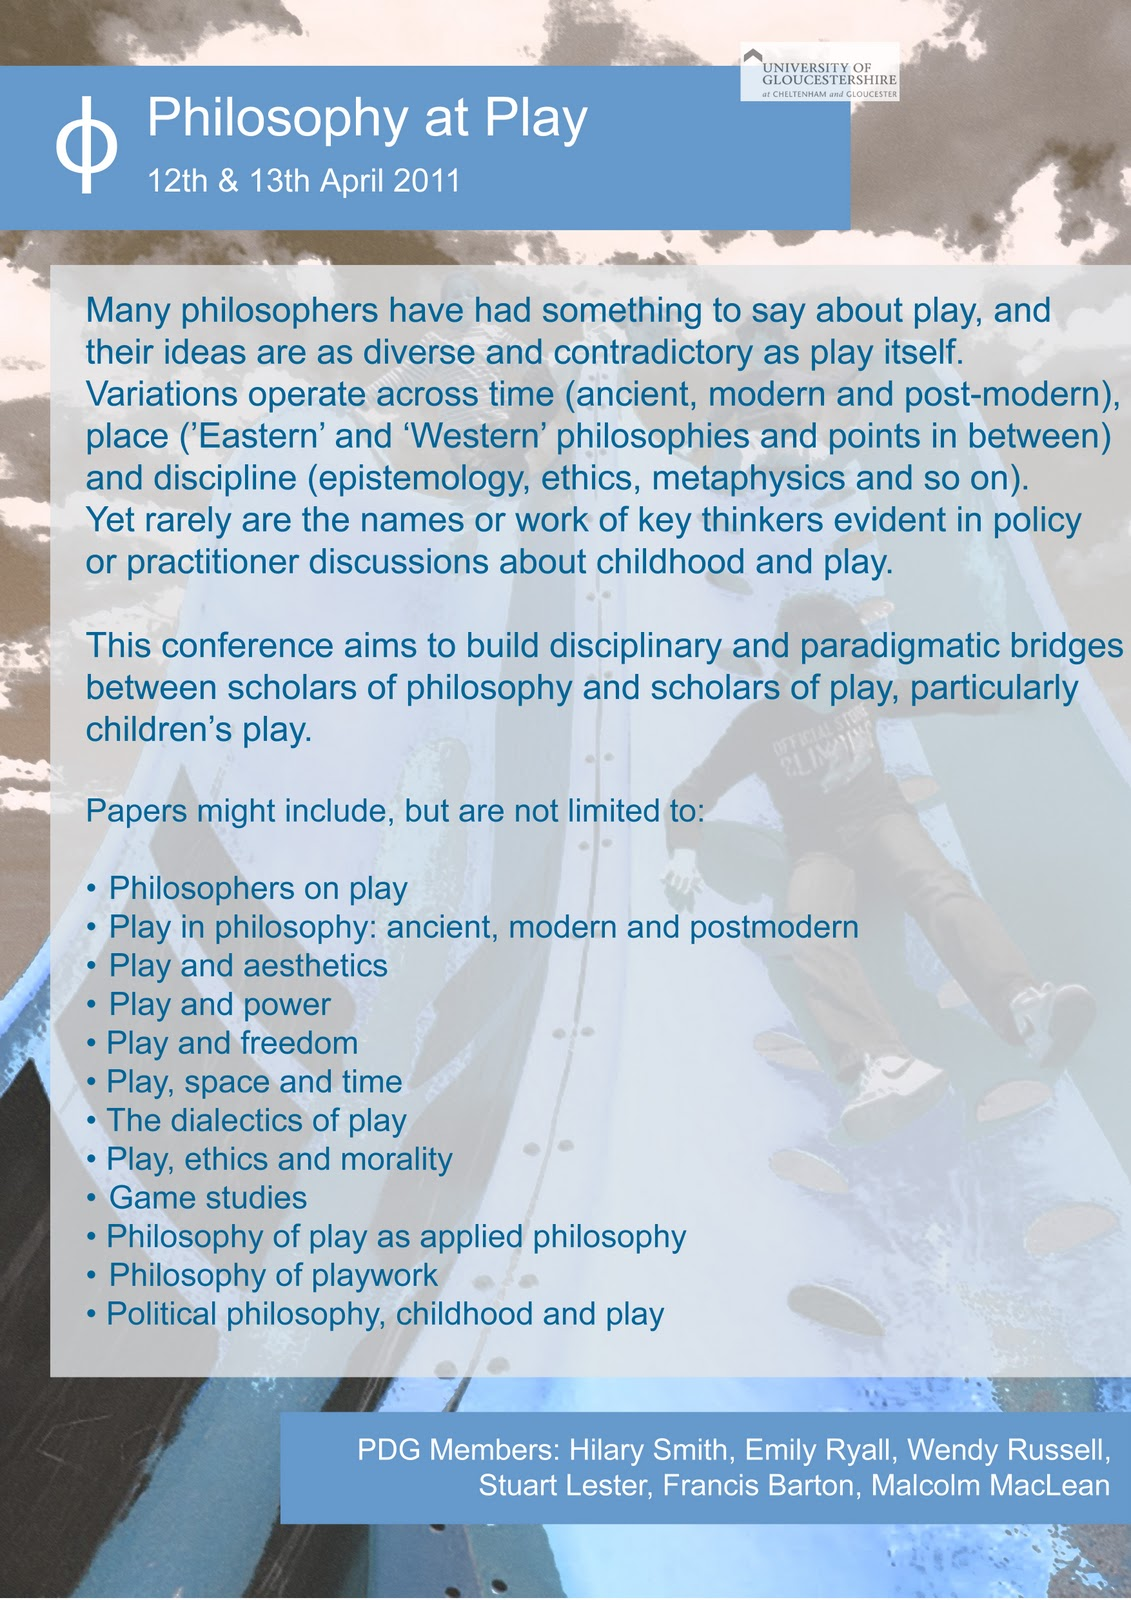 philosophy at play philosophy at play conference details for further information or if you have any questions please email the organising group philosophyatplay glos ac uk